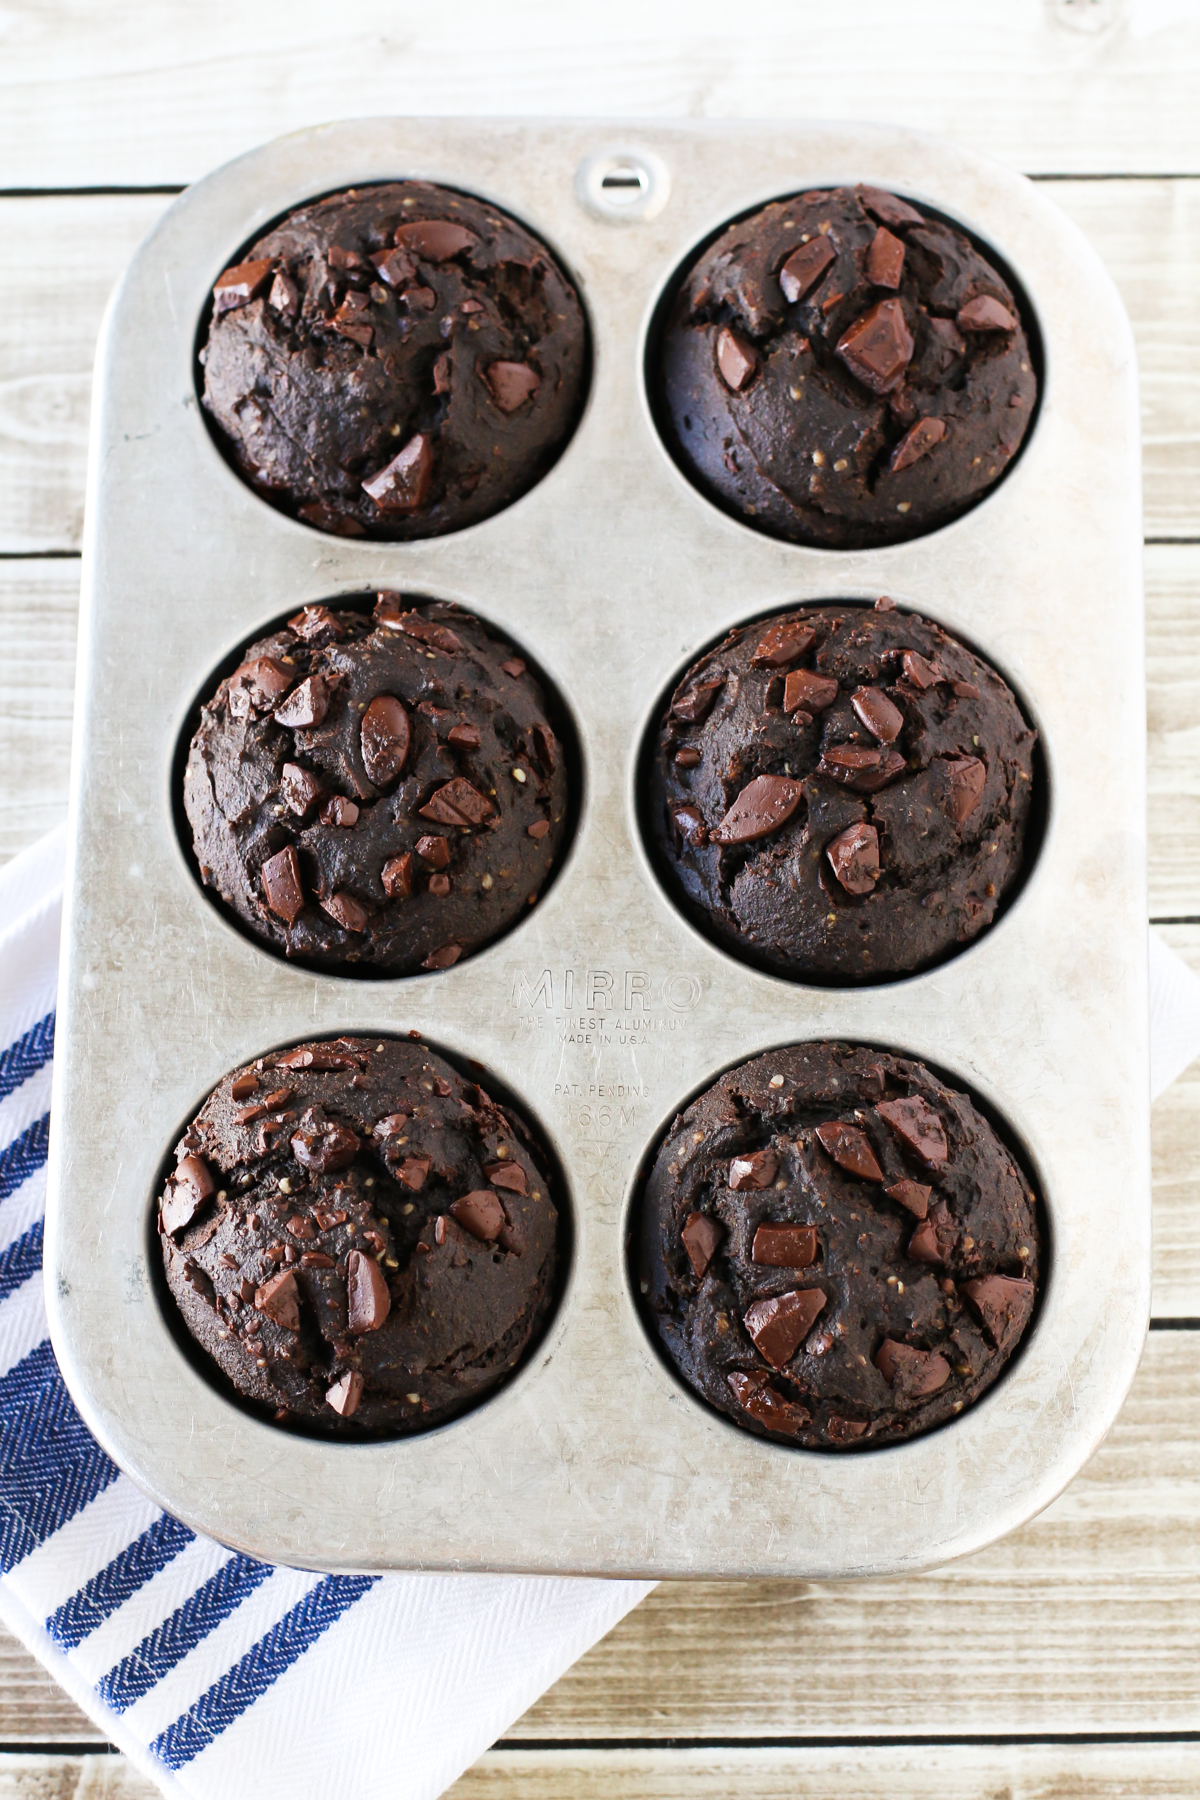 Gluten Free Vegan Dark Chocolate Muffins. Refined sugar free, these muffins are even packed with protein and a secret ingredient!